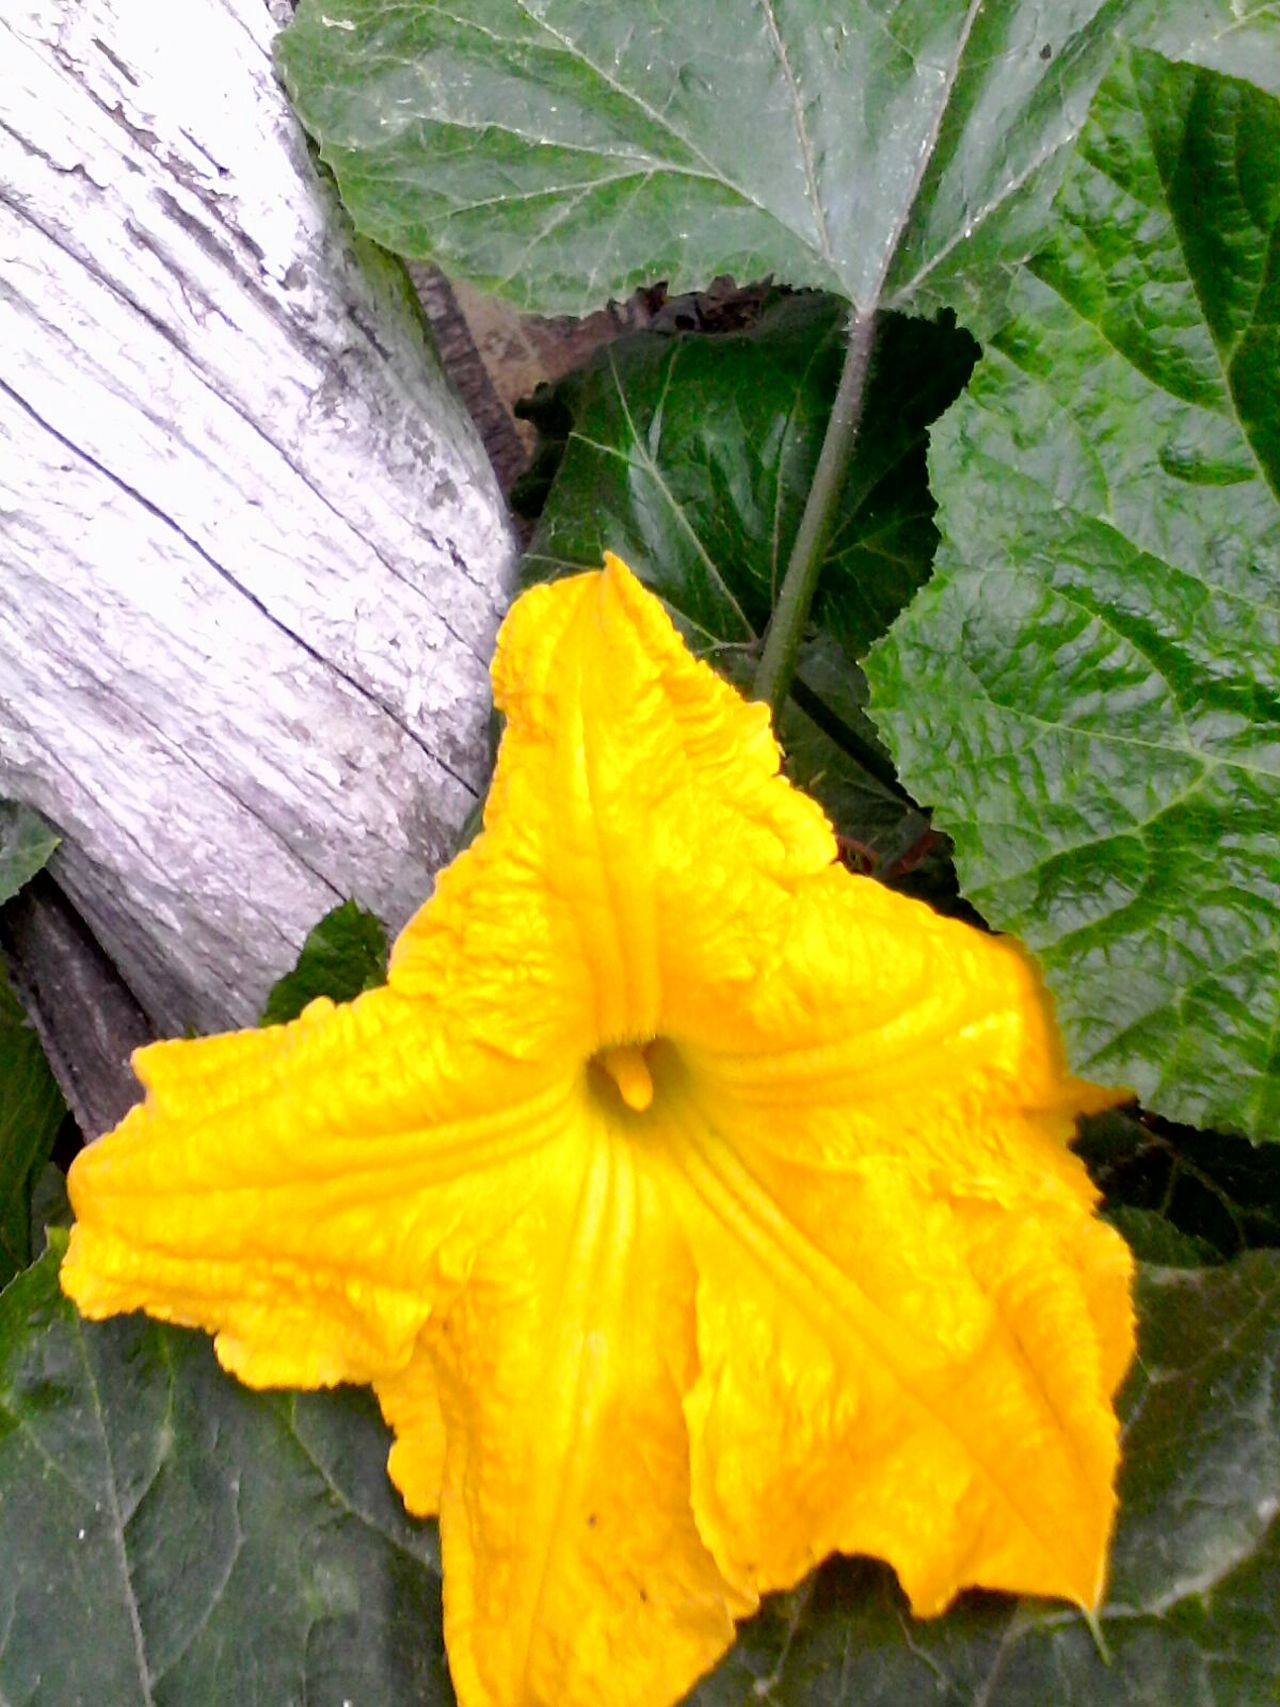 Pumpkin Flower Plants Showcase: 2016 Ionitaveronica Eyeem Market @wolfzuachis Romanian  Enhanced Original Content Wolfzuachis Slowfood Green Vines Pumpkin Blossom Showcase: August Eyeemphoto Nature Plant Pumpkin Plant Blossom In My Backyard Pumpkin Leaves 2016 Autumn Pumpkin Vines